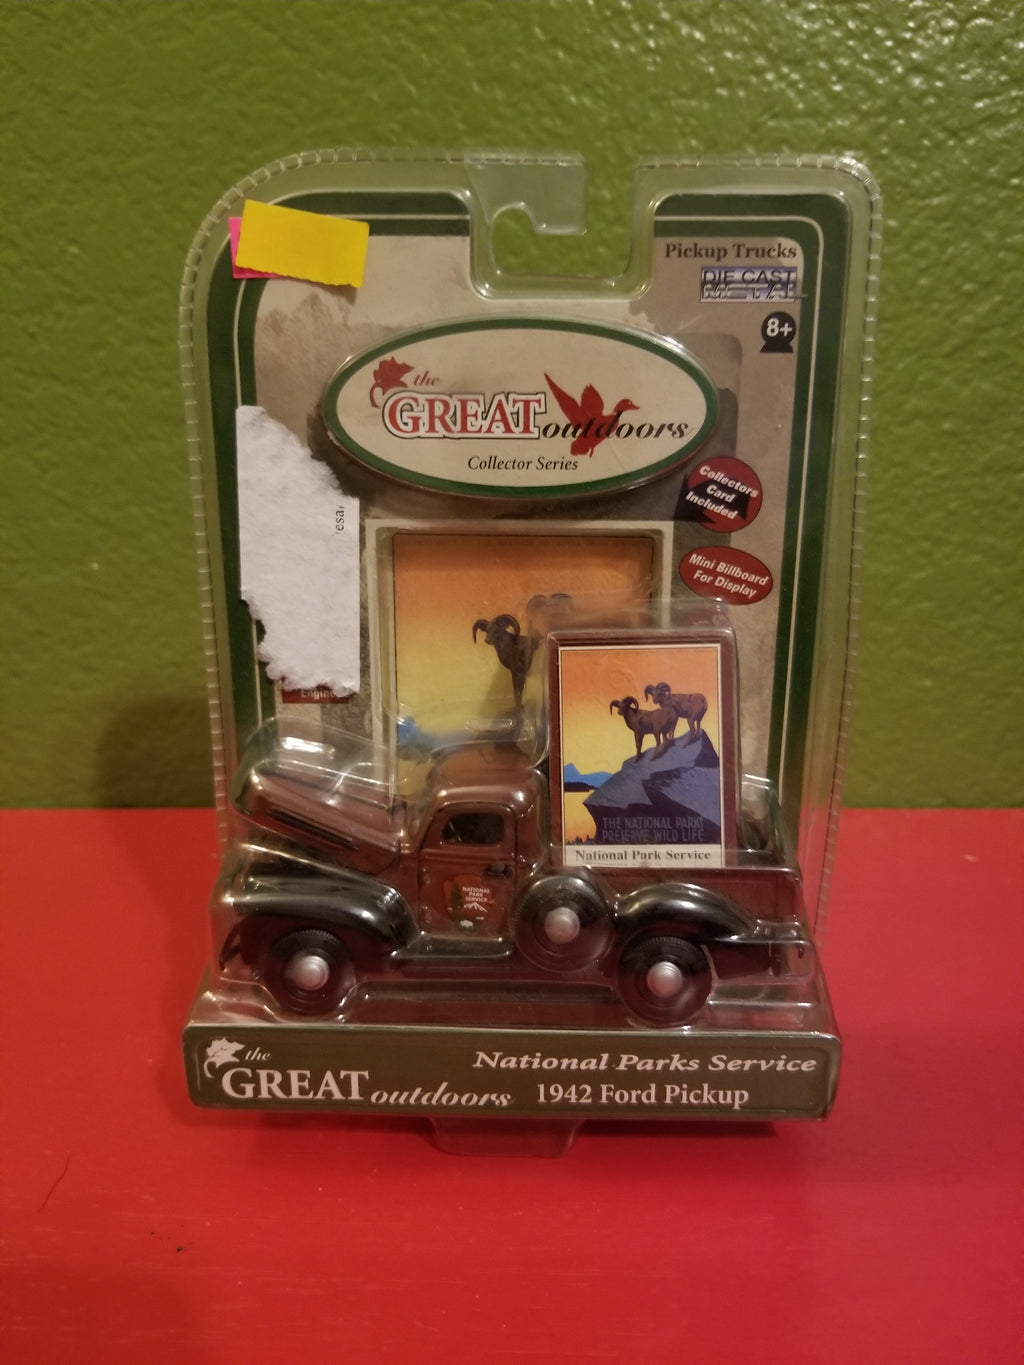 Gearbox Toys The Great Outdoors Collectors Series 1942 Ford Pickup